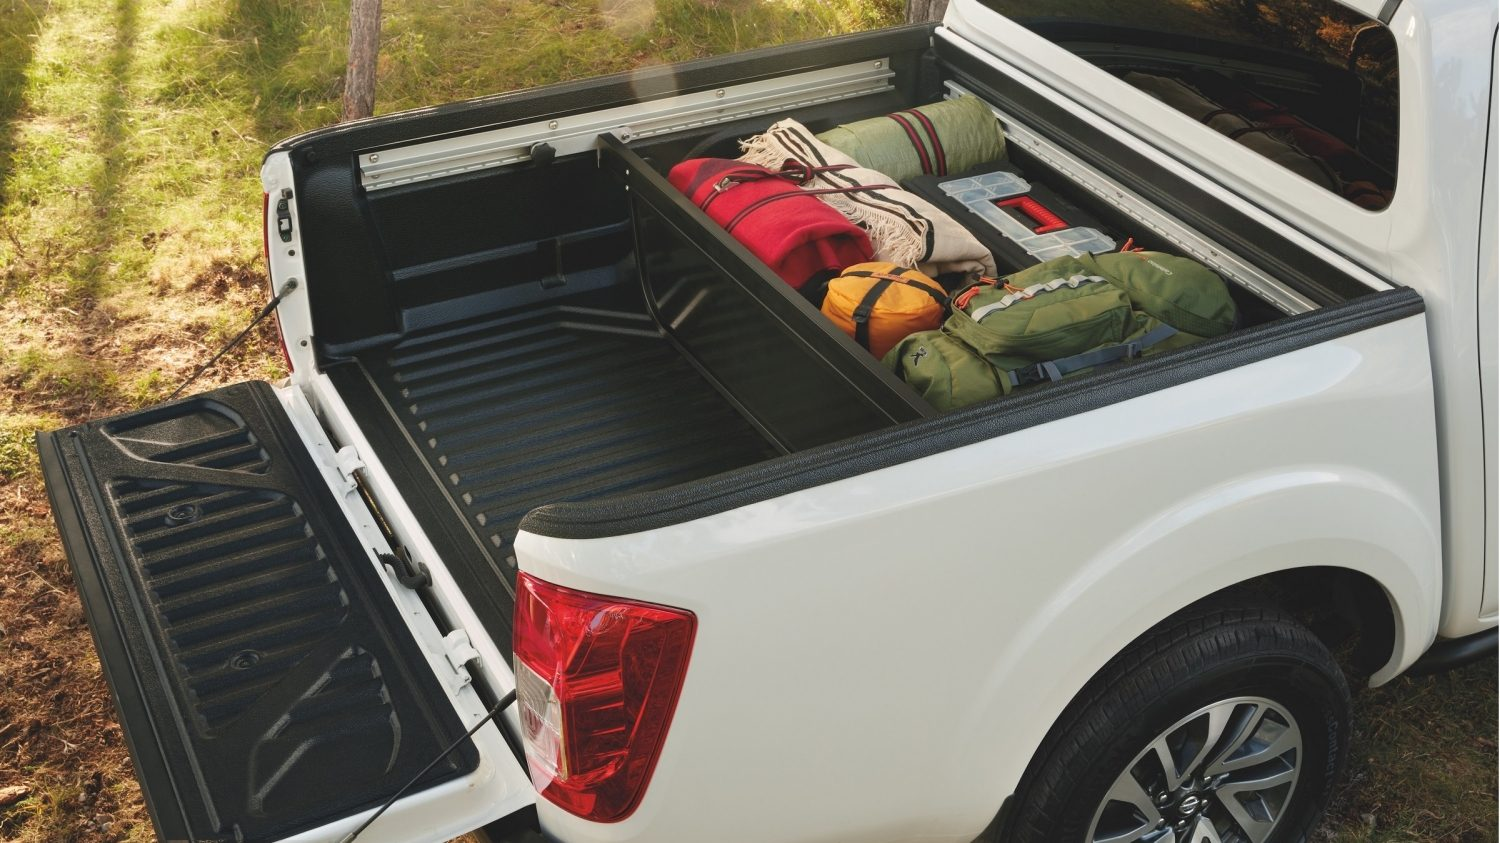 White nissan navara with bed divider in carriage